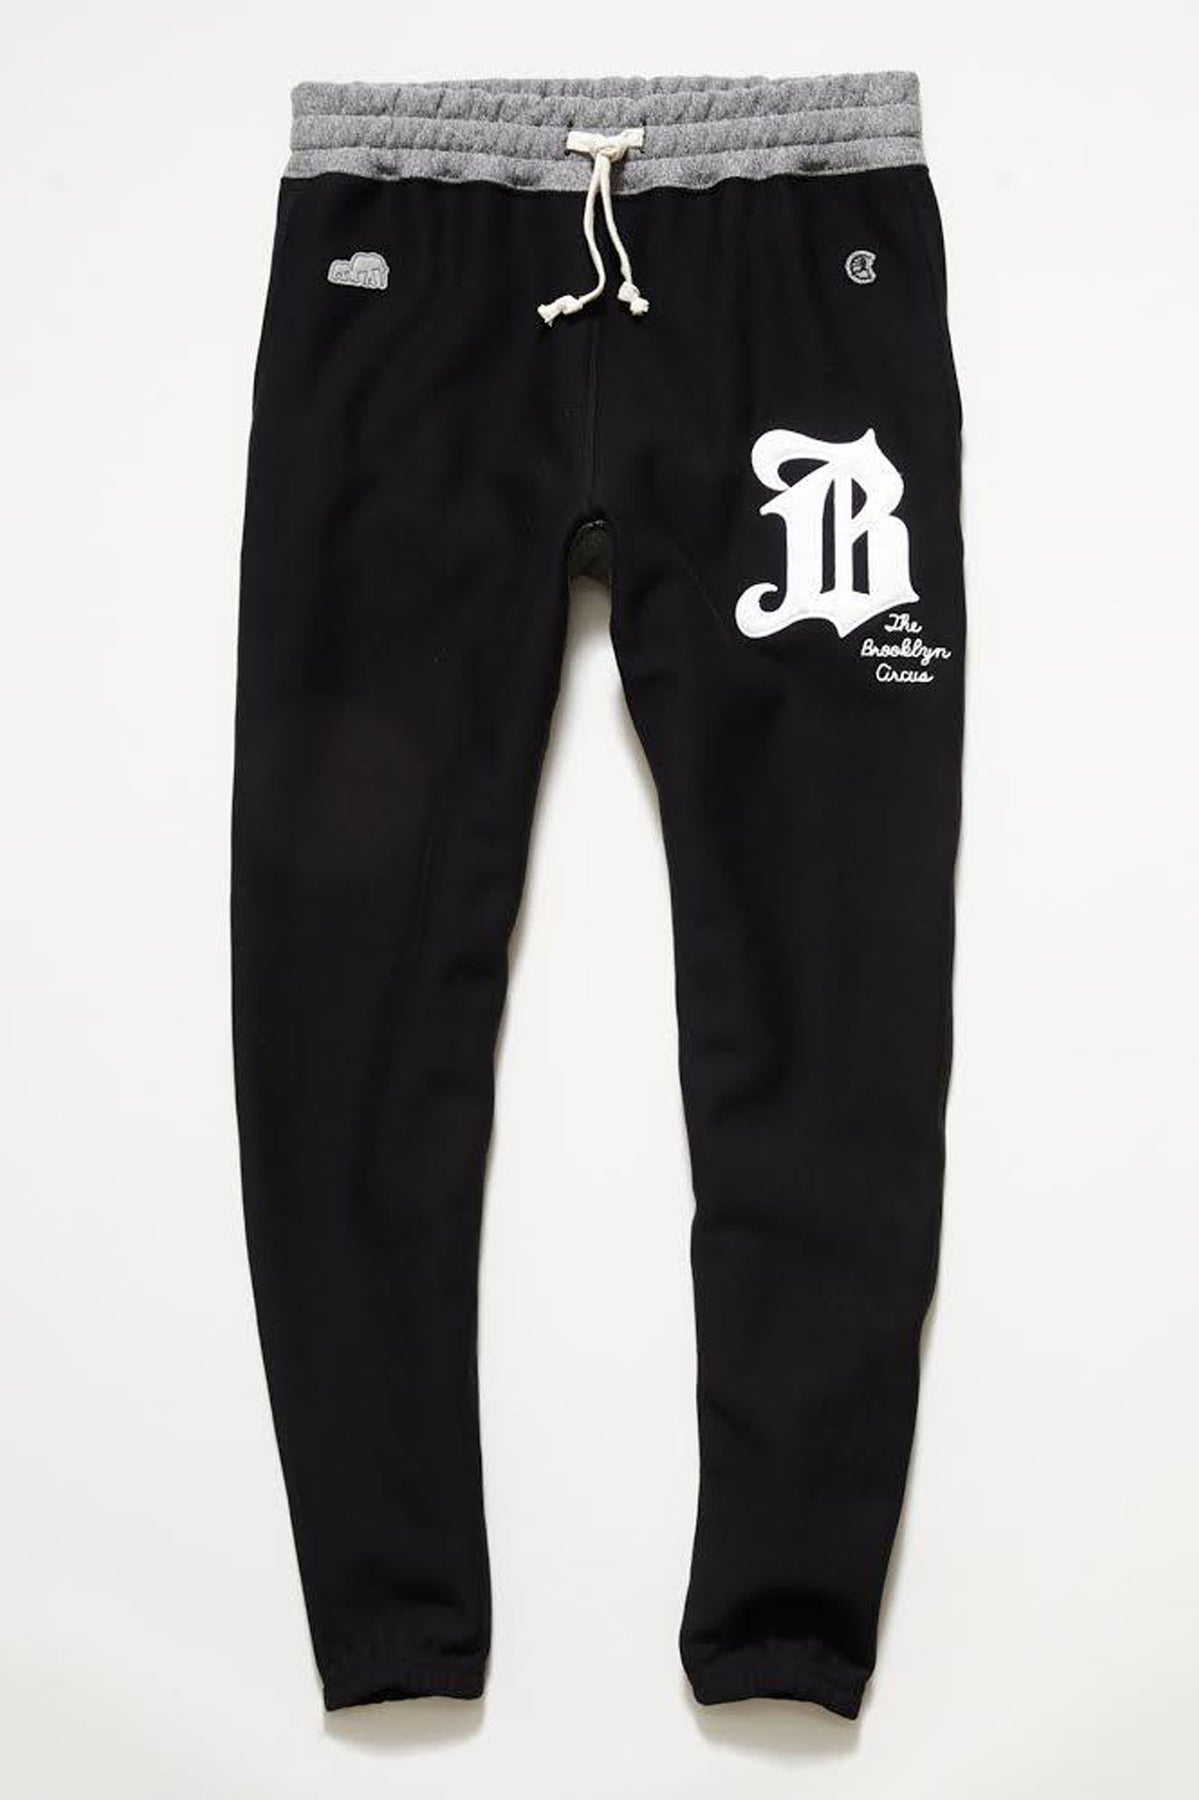 "RESTOCK! TS x Champion +  BKc Limited Edition: ""B"" Sweatpants in Black"